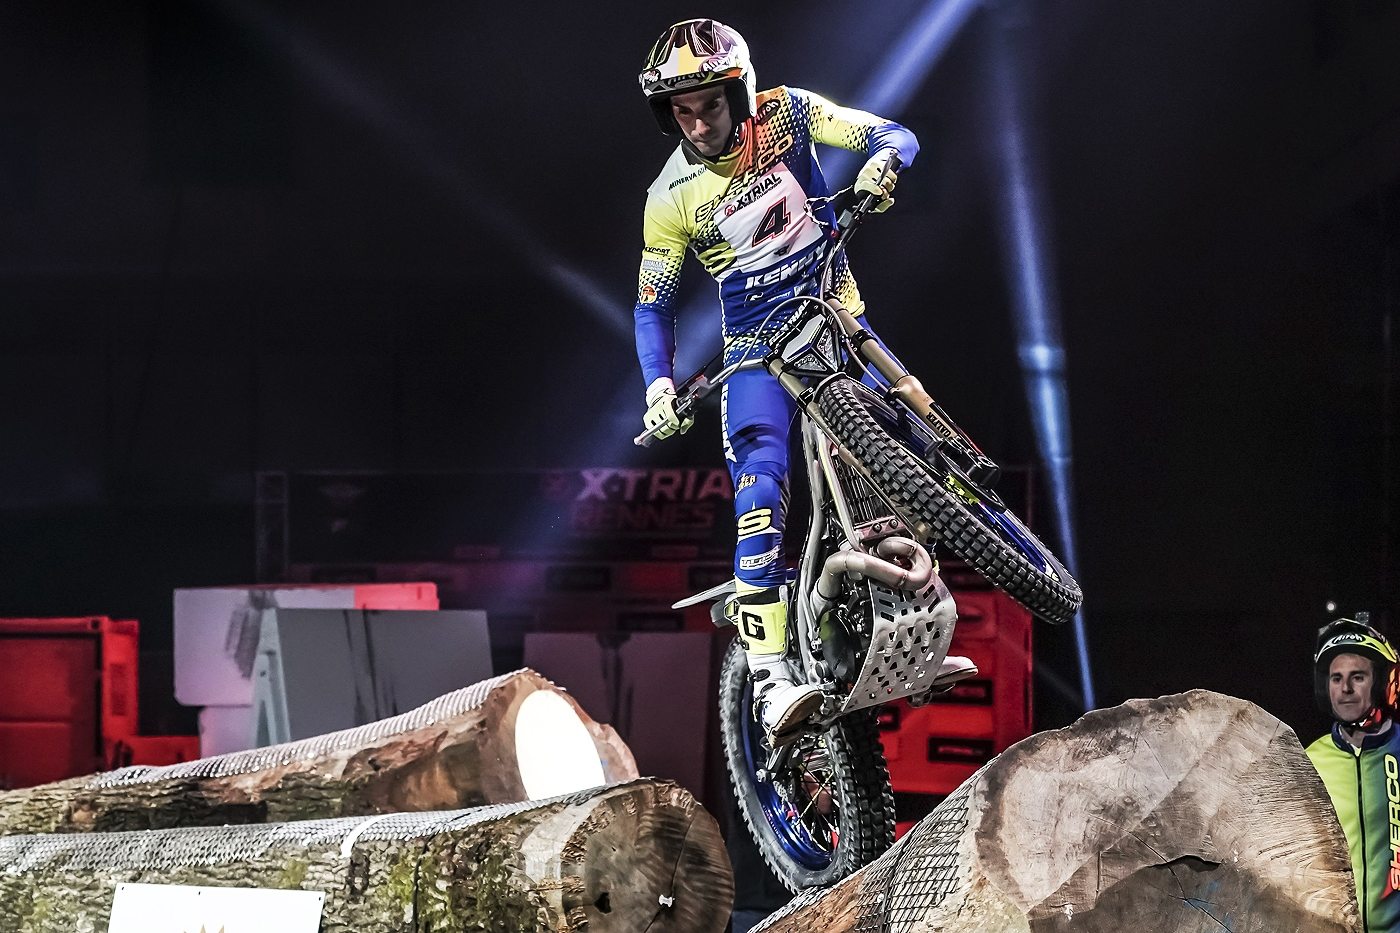 Fajardo, Gelabert and Casales prepare for X-Trial Budapest